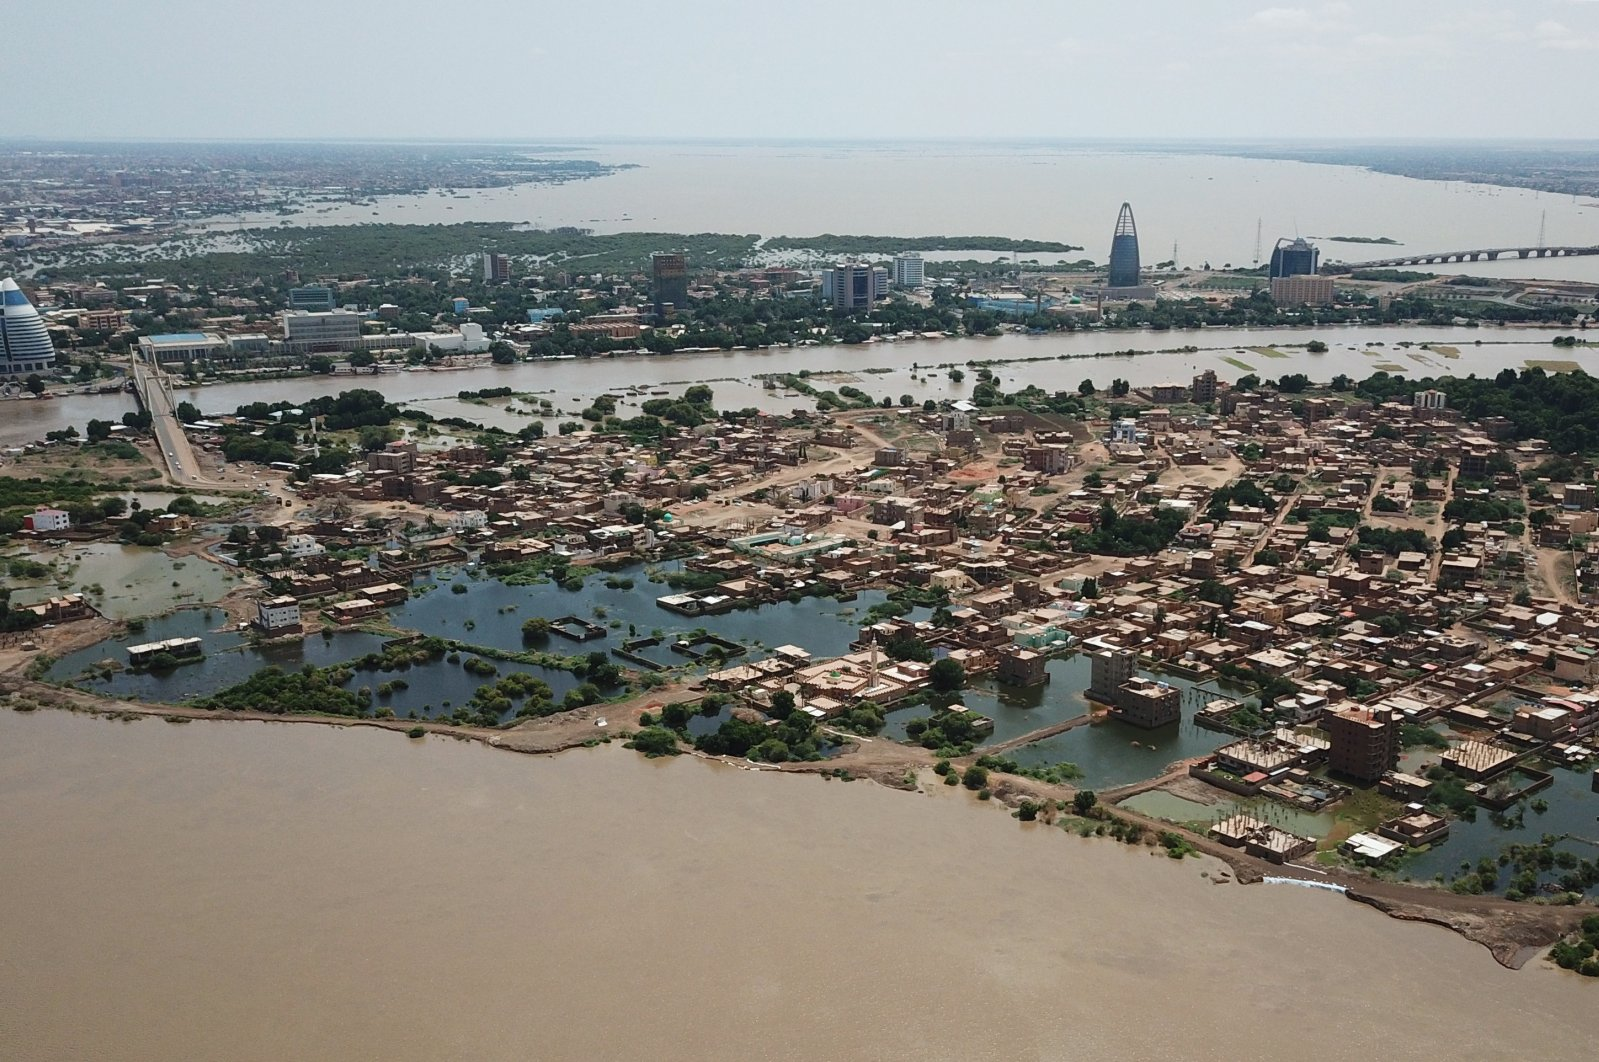 An aerial view shows buildings and roads submerged by floodwaters near the Nile in South Khartoum, Sudan, Sept. 8, 2020. (Reuters Photo)